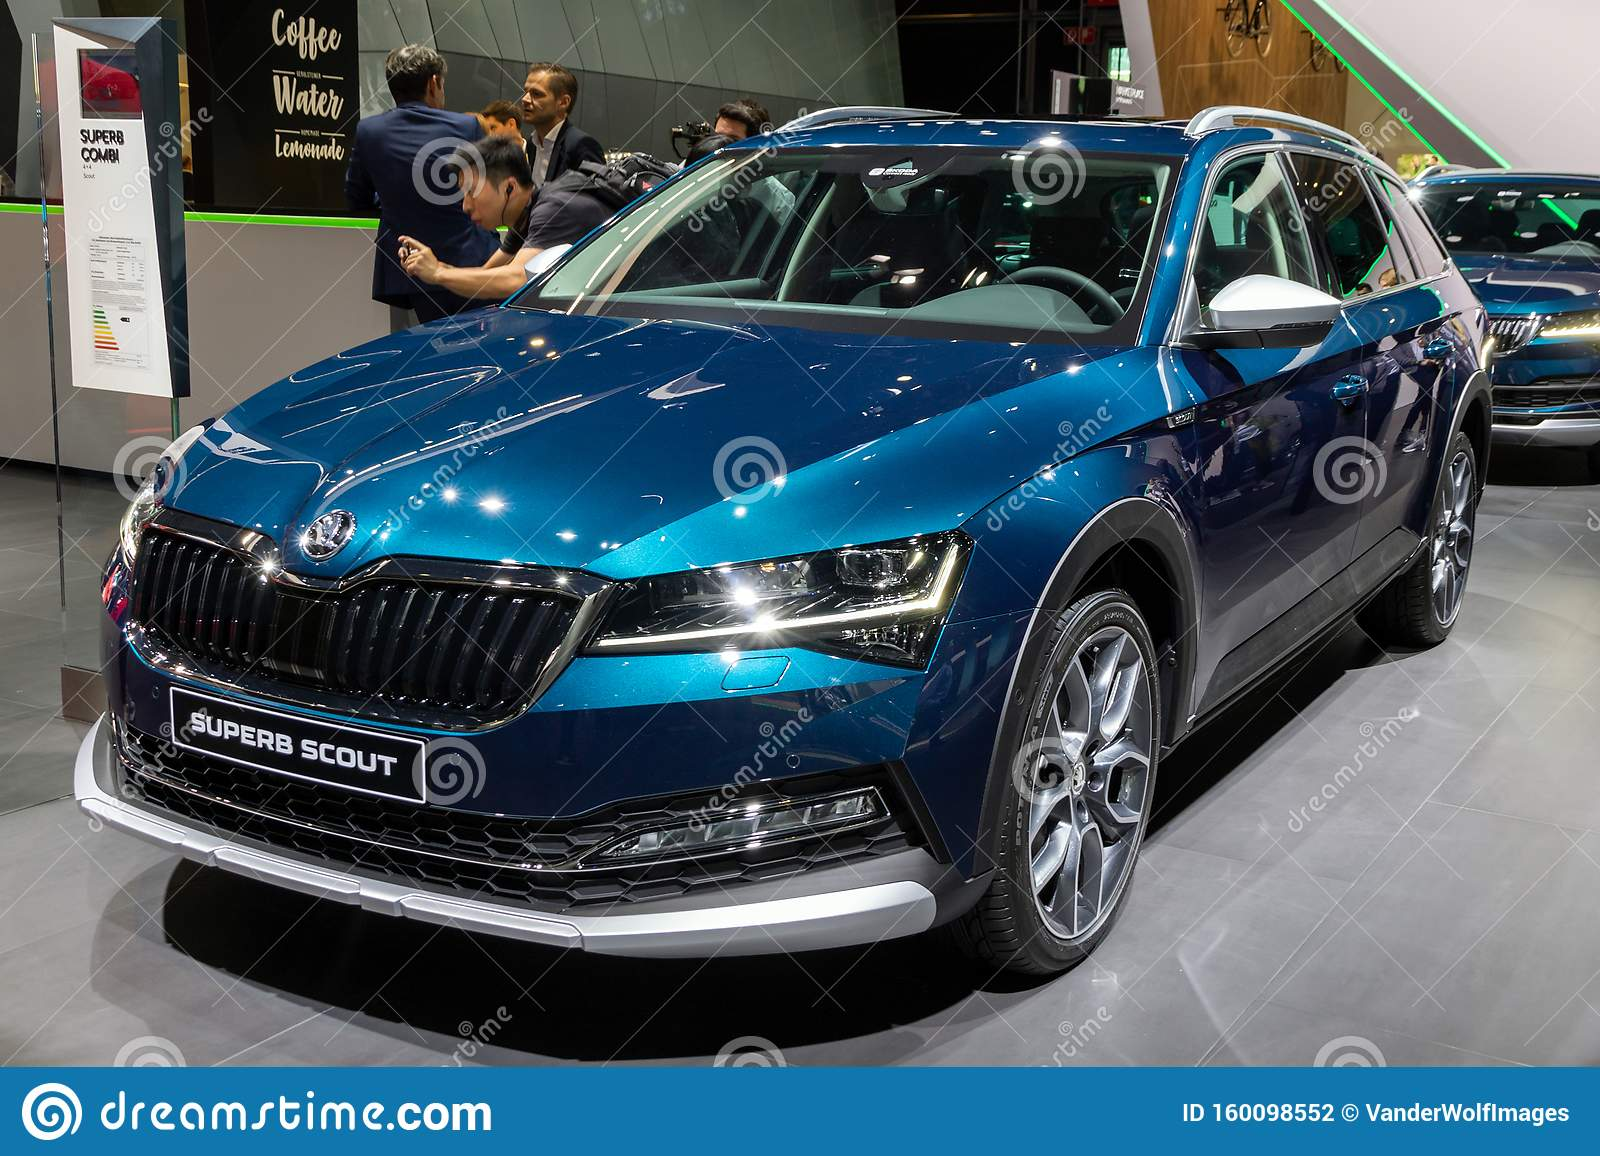 New 2020 Skoda Superb Scout Car Editorial Photography ...